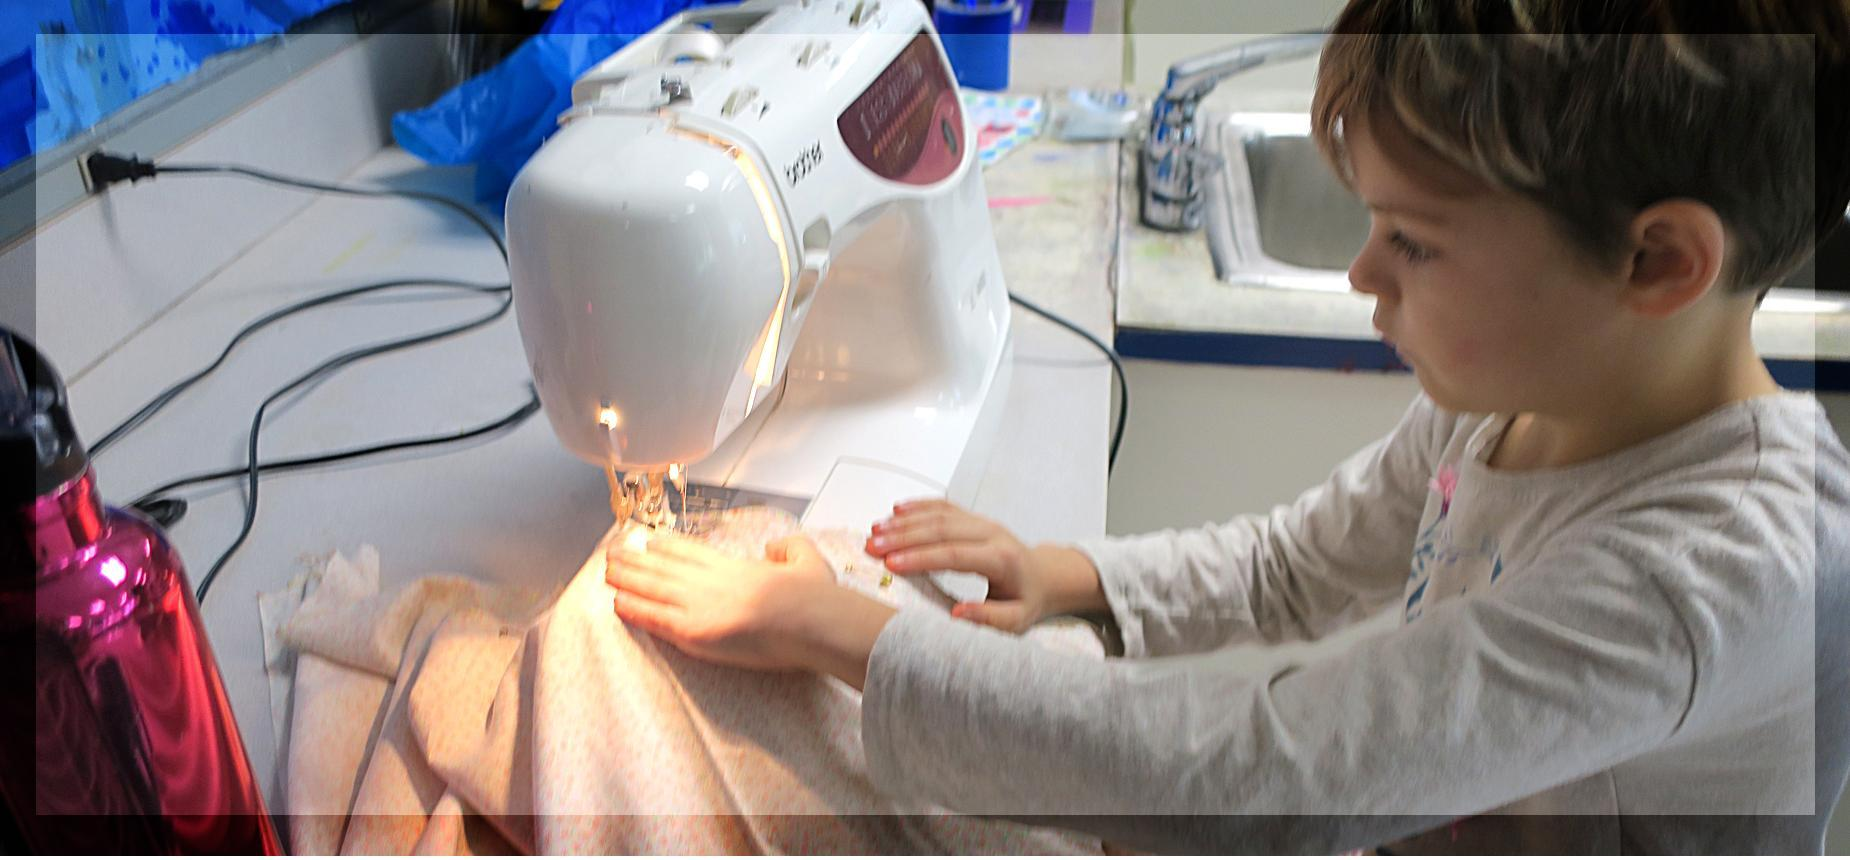 Elementary student learning how to sew on a sewing machine.